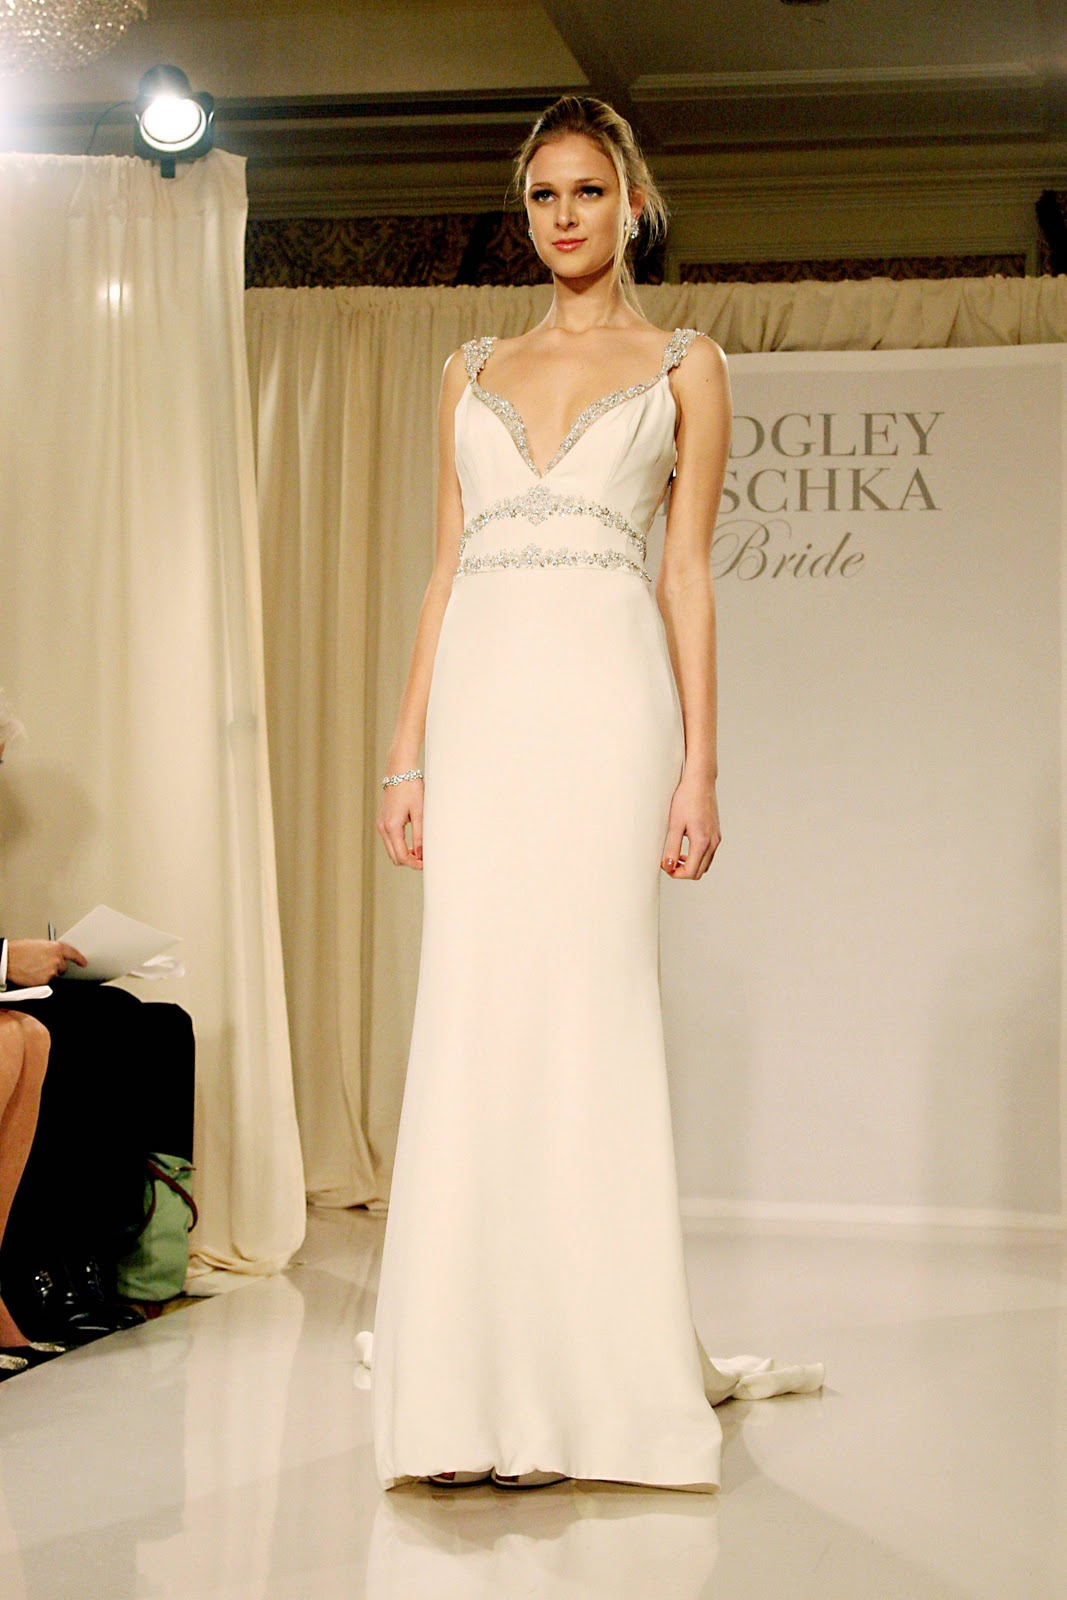 Cheap wedding gowns online blog badgley mischka bridal for Wedding dress badgley mischka